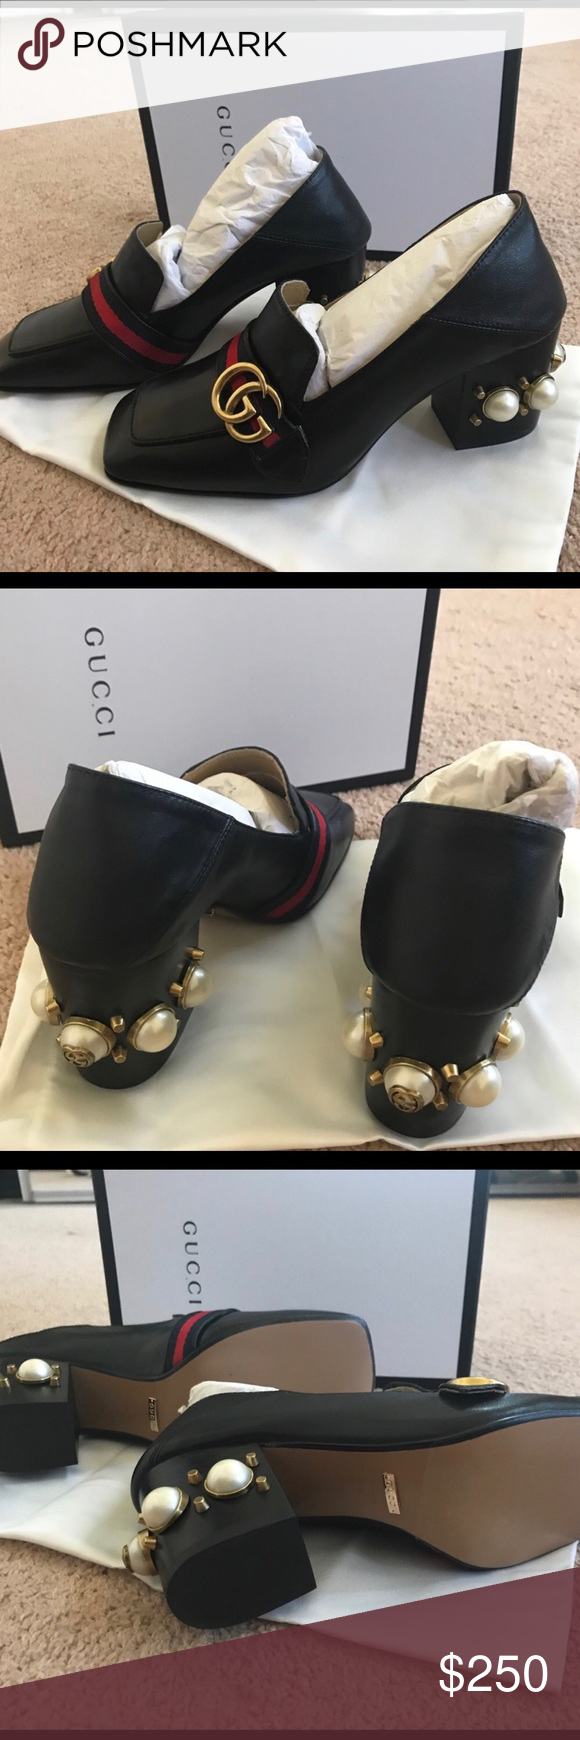 Gucci pearl heels New in box i'm not sure about authenticity cause it's a gift and i can't guarantee but to me it look like %95 auth Gucci Shoes Heels